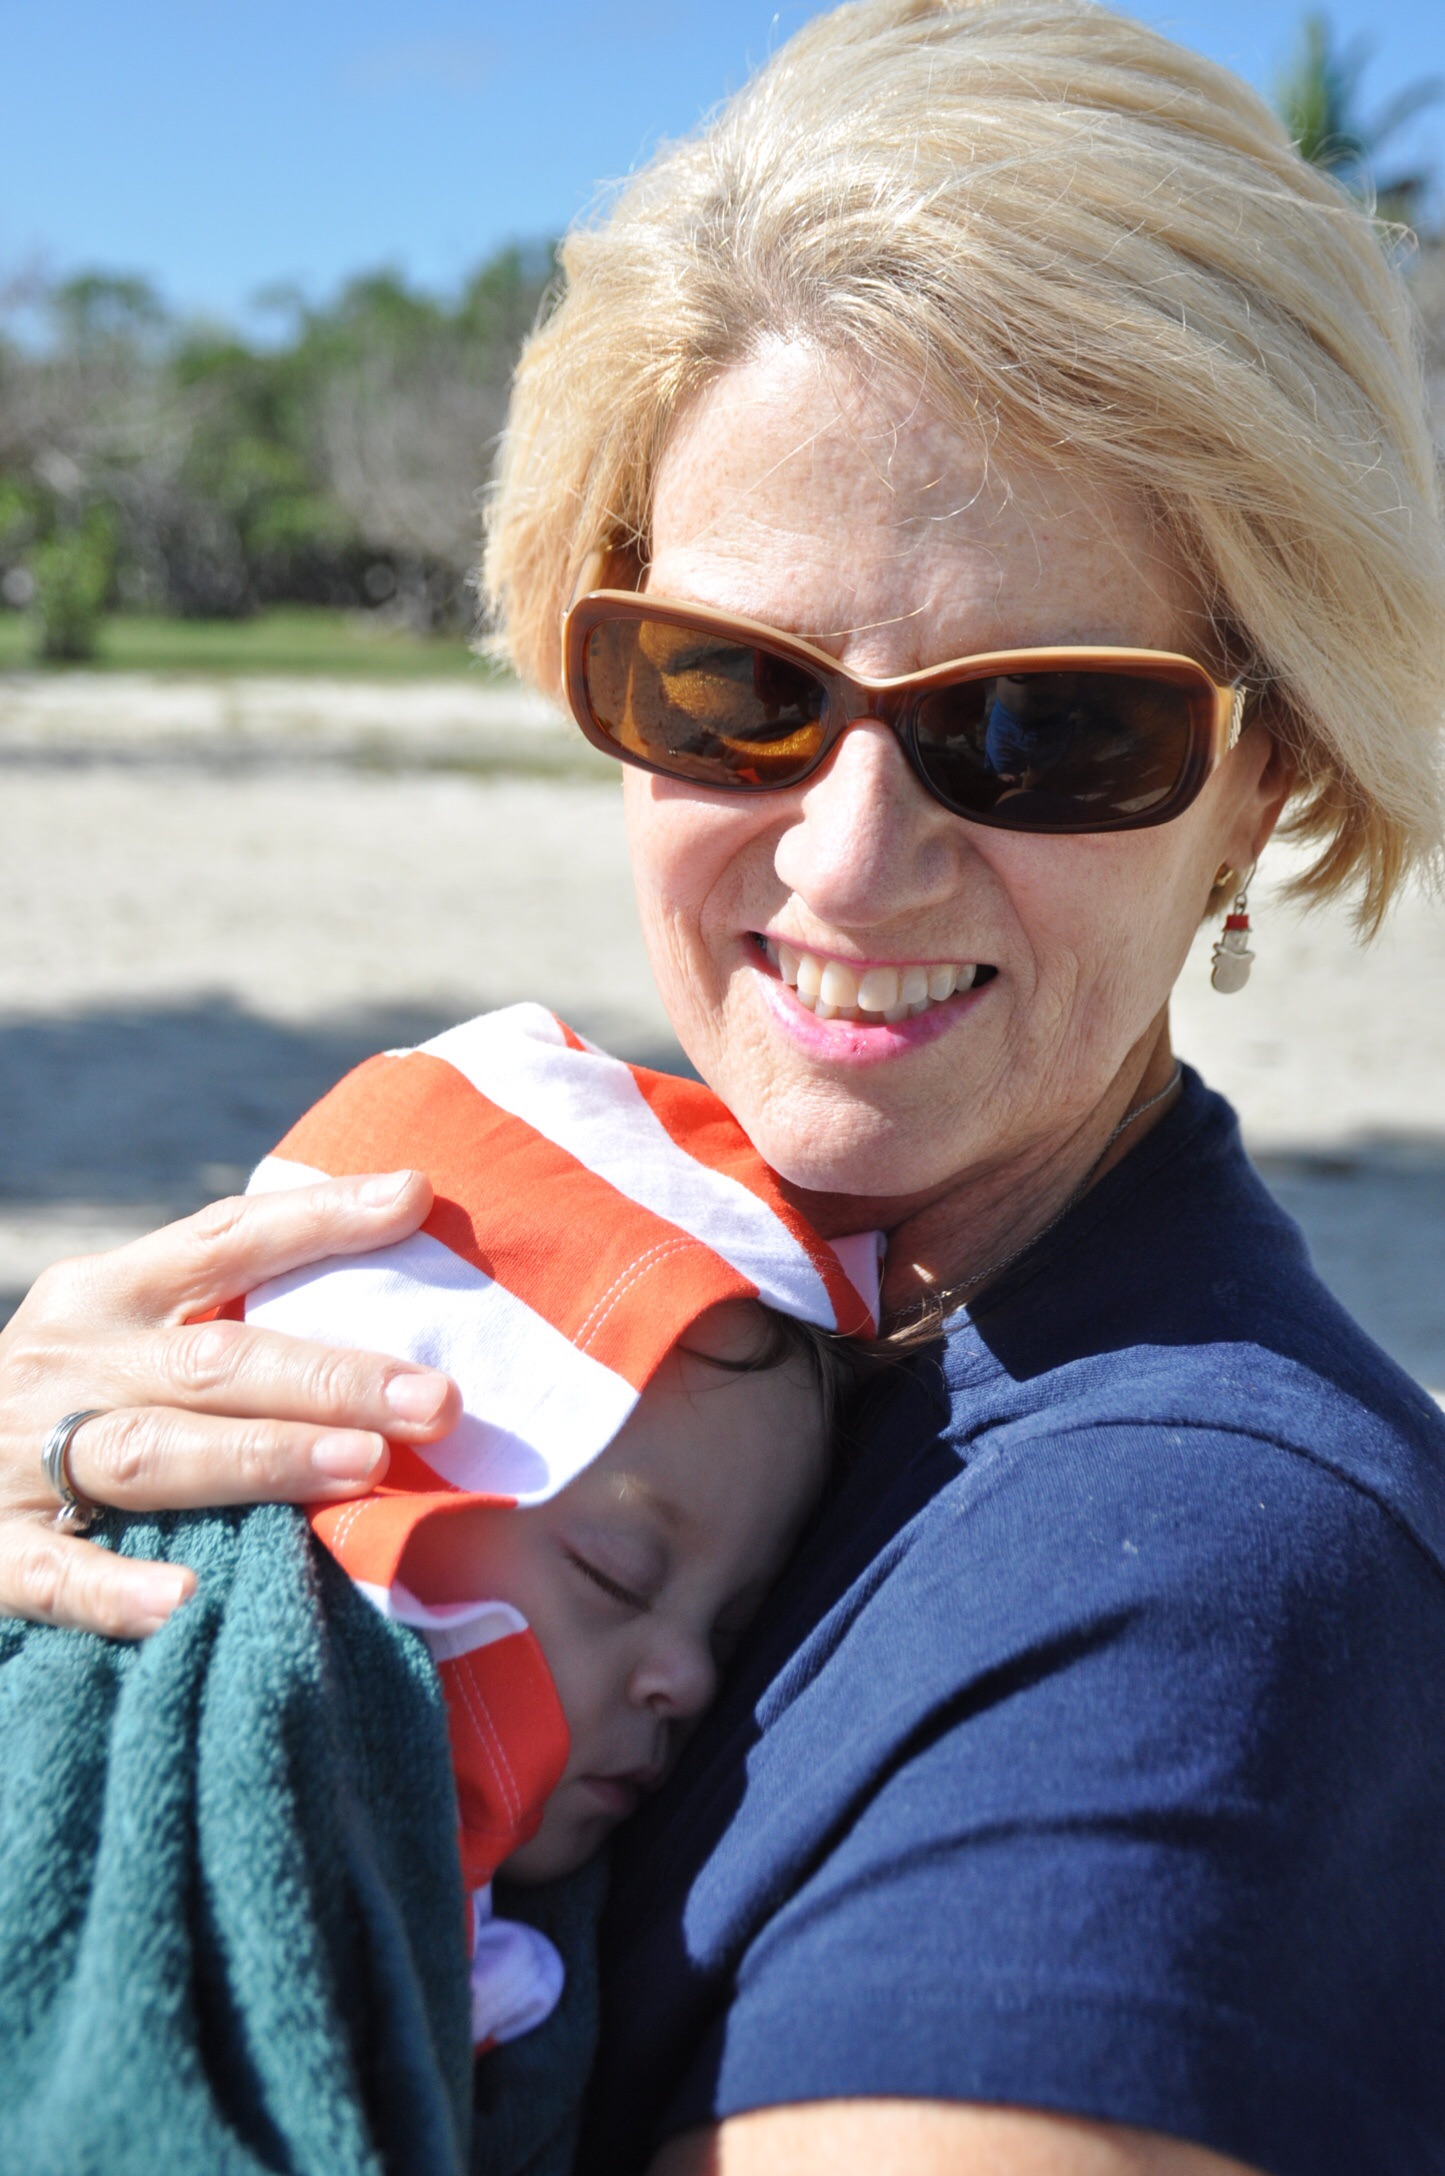 Beach naps are the best, especially with snuggles with her Great-Aunt Neise!